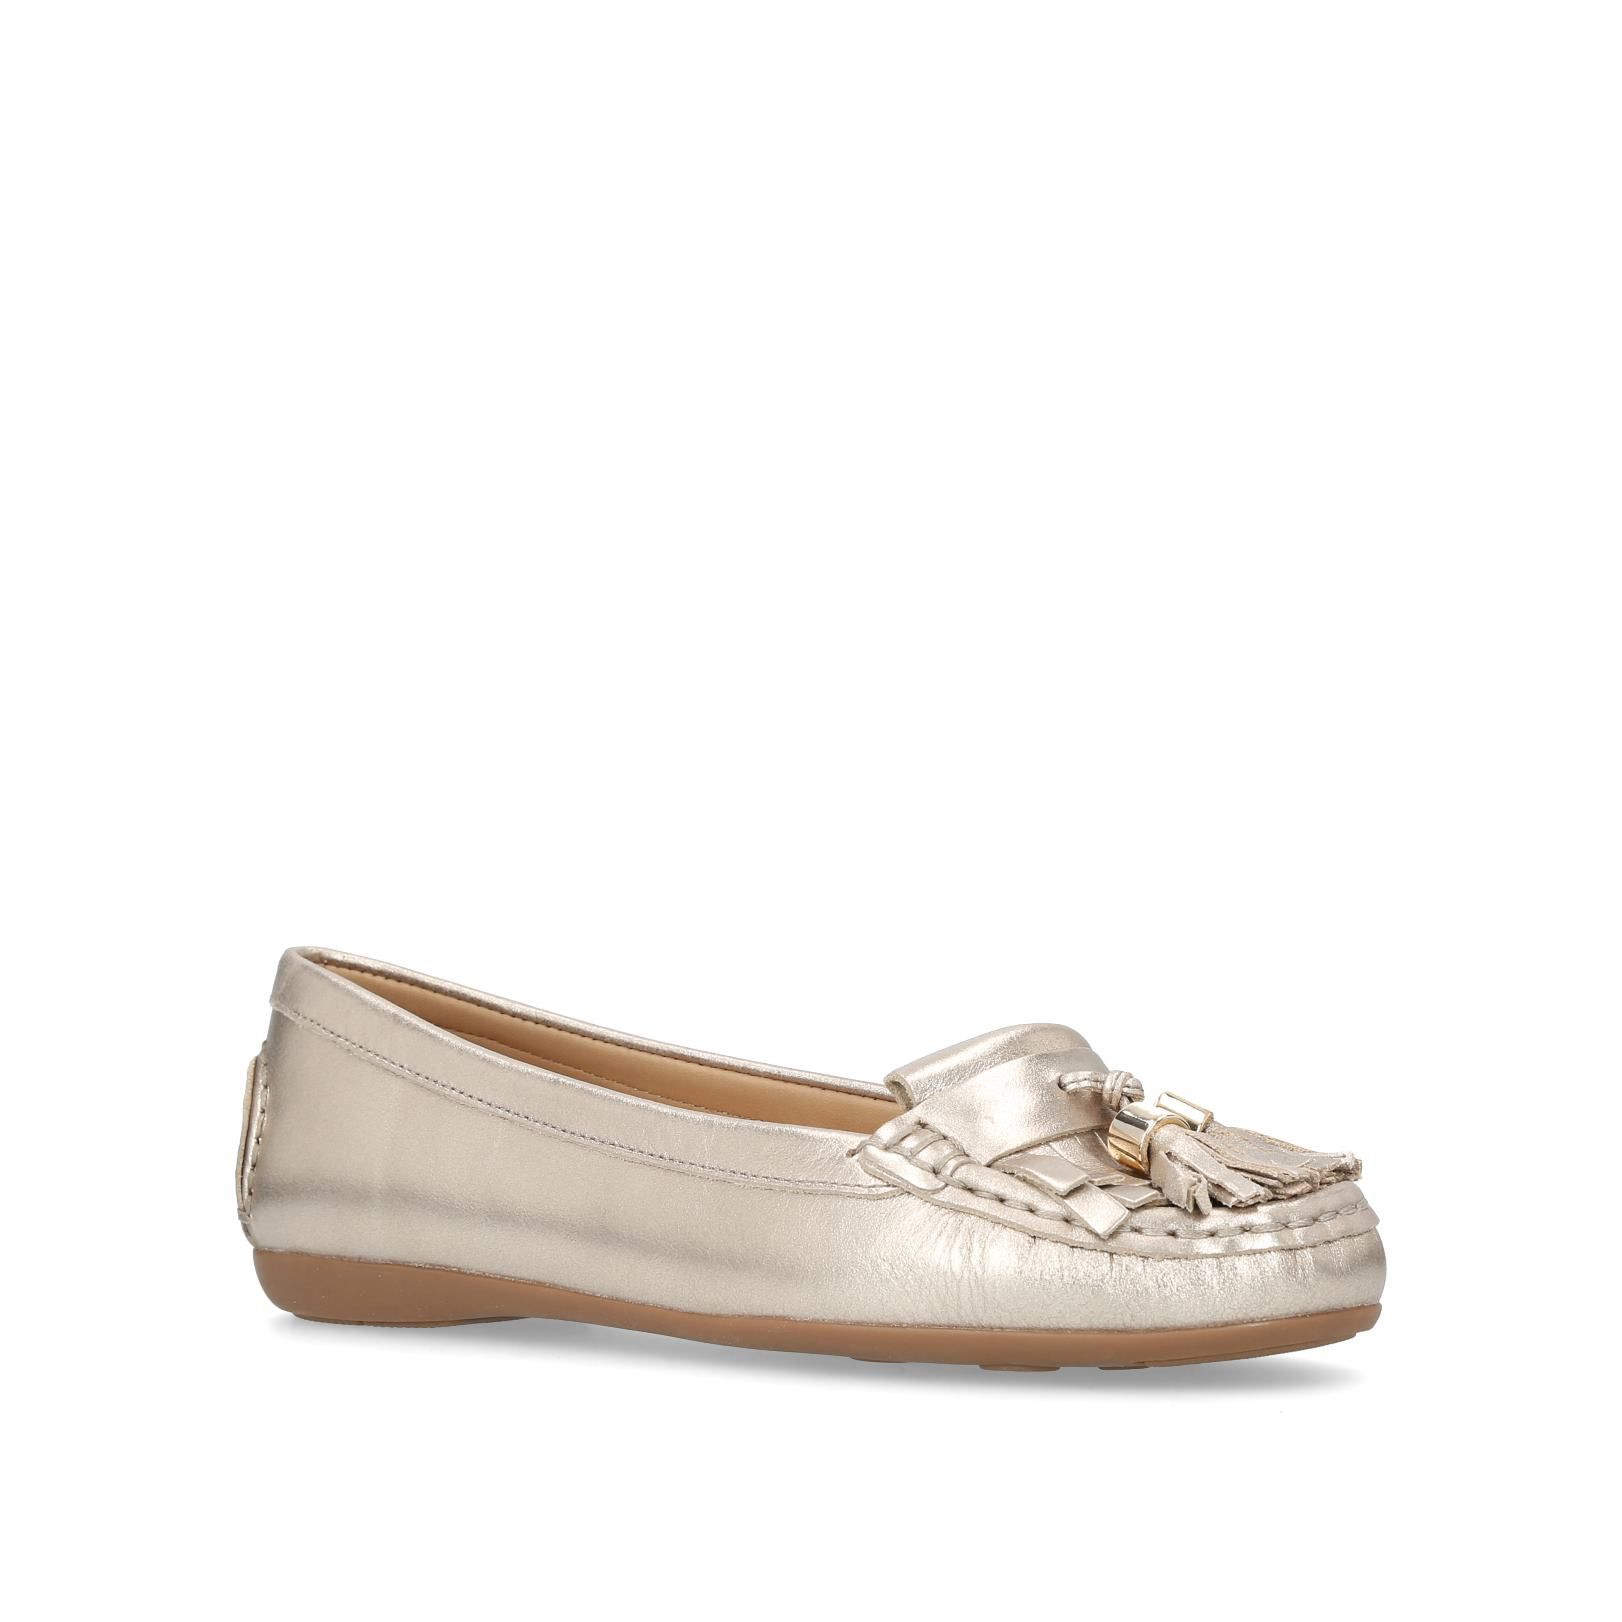 Carvela Comfort Chloe Loafers, Gold Silverlic